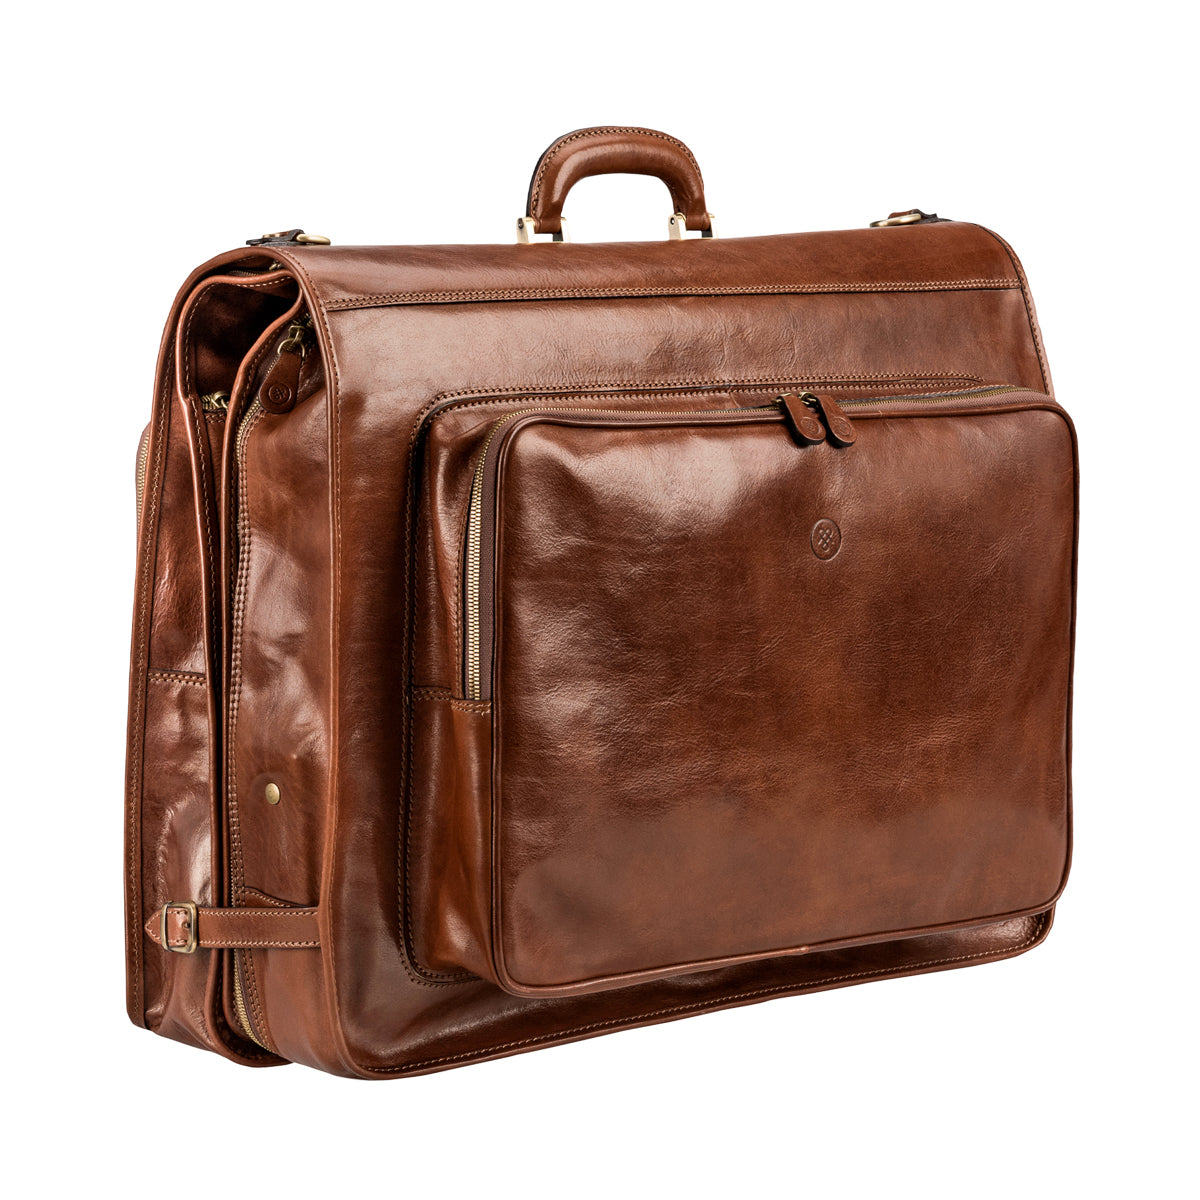 Image 2 of the 'Rovello' Chestnut Veg-Tanned Leather Suit Carrier